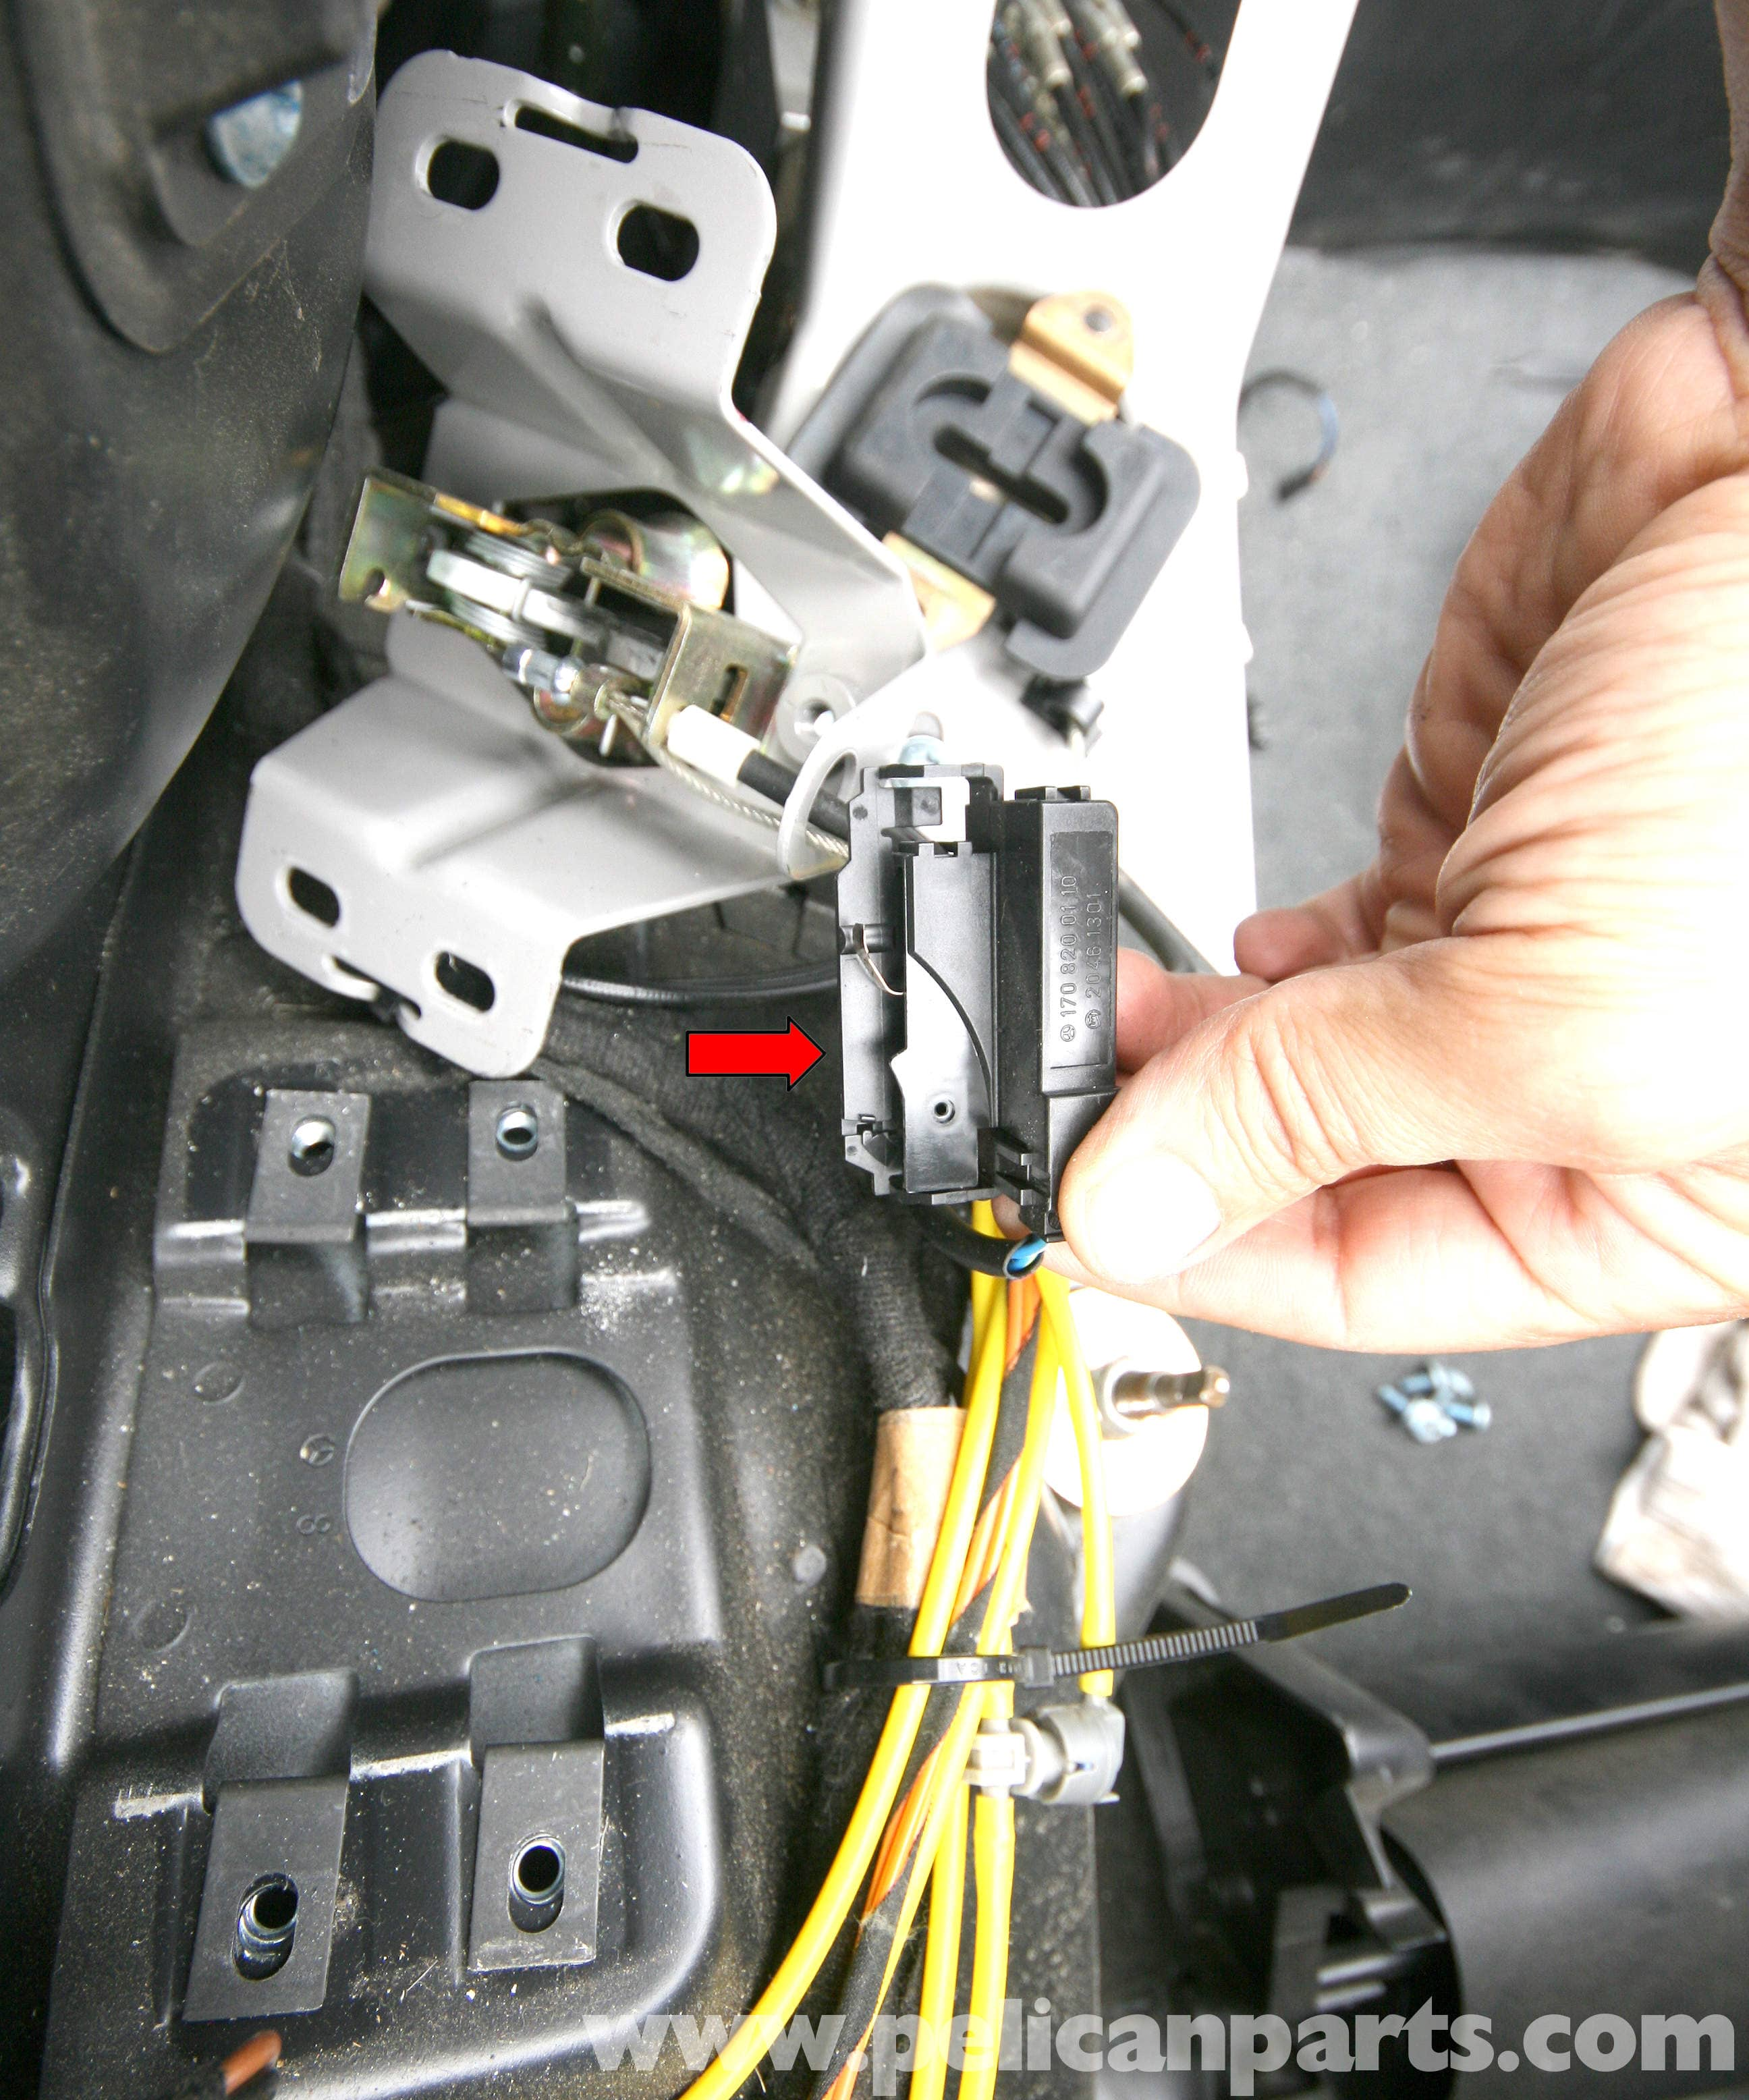 11 Flat Pin Relay Wiring Diagram Mercedes Benz Slk 230 Vario Roof Switches Location And Id